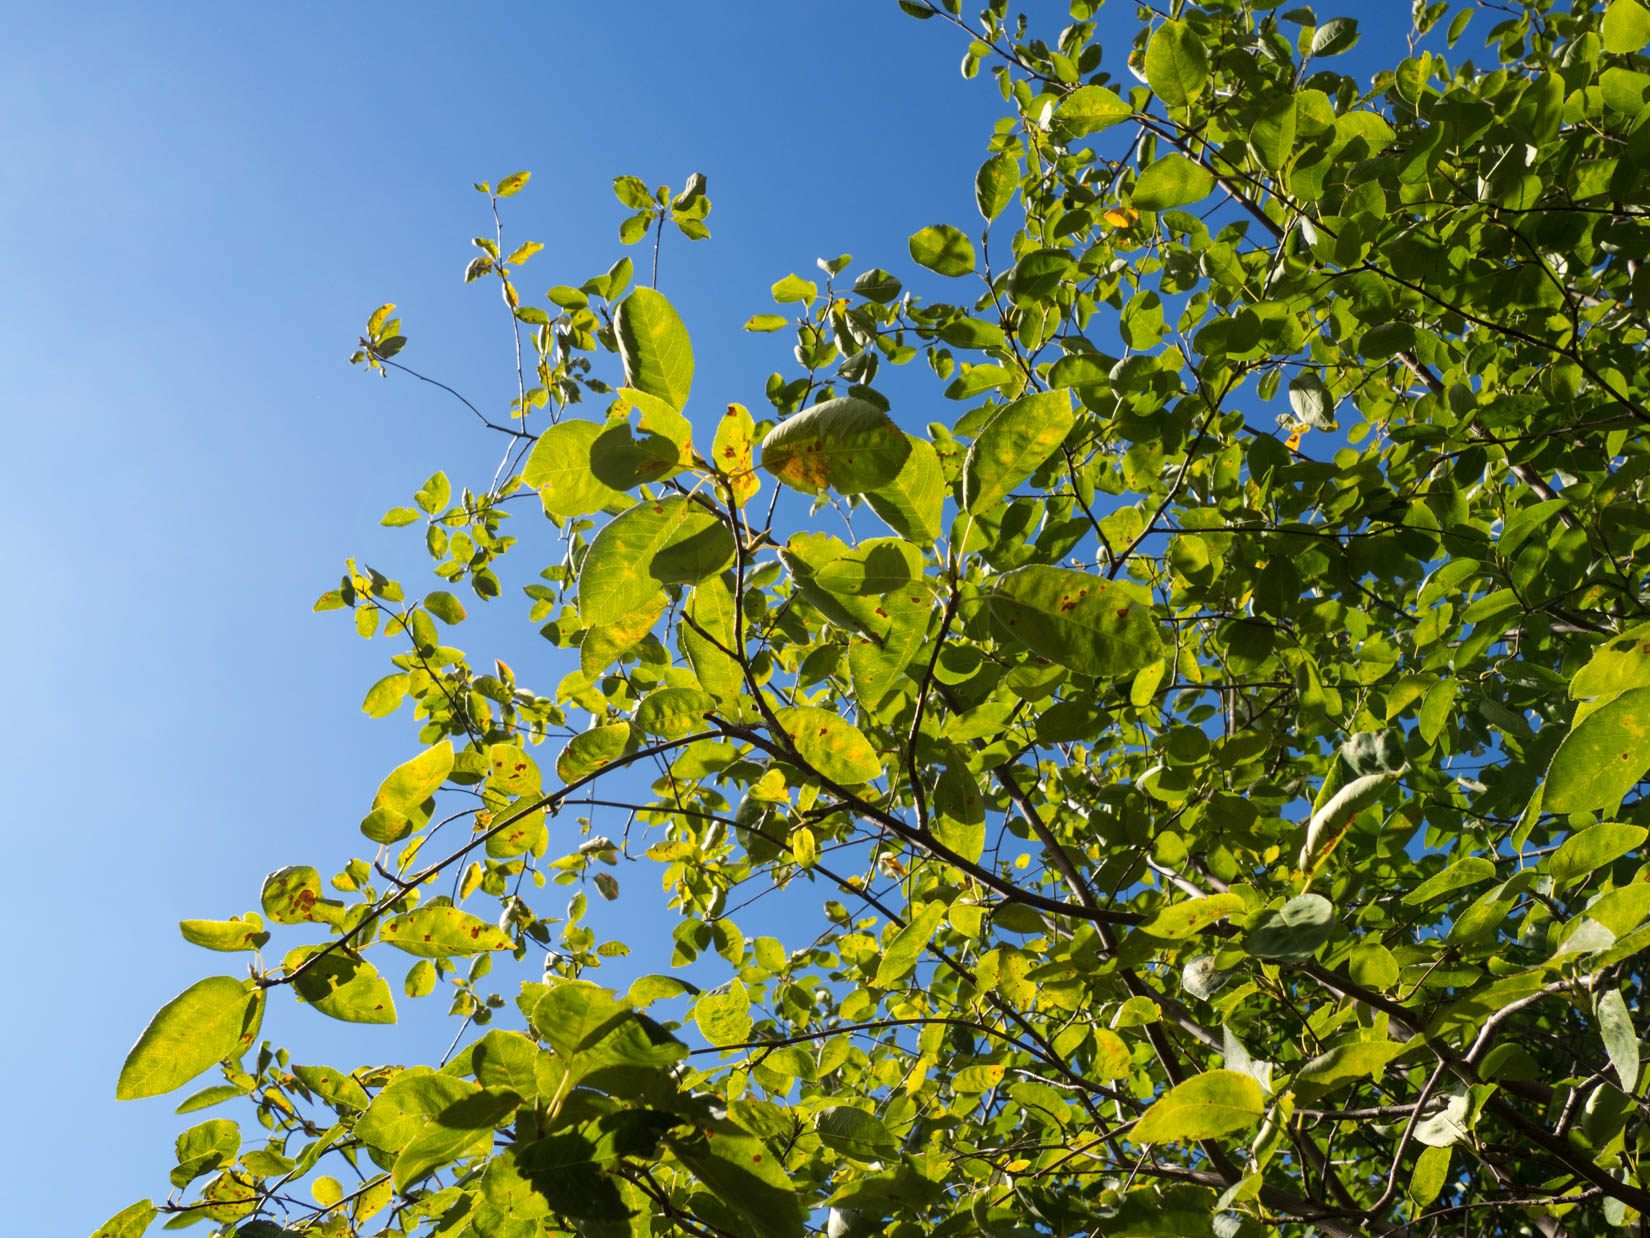 Leaves on Tree Over Blue Sky